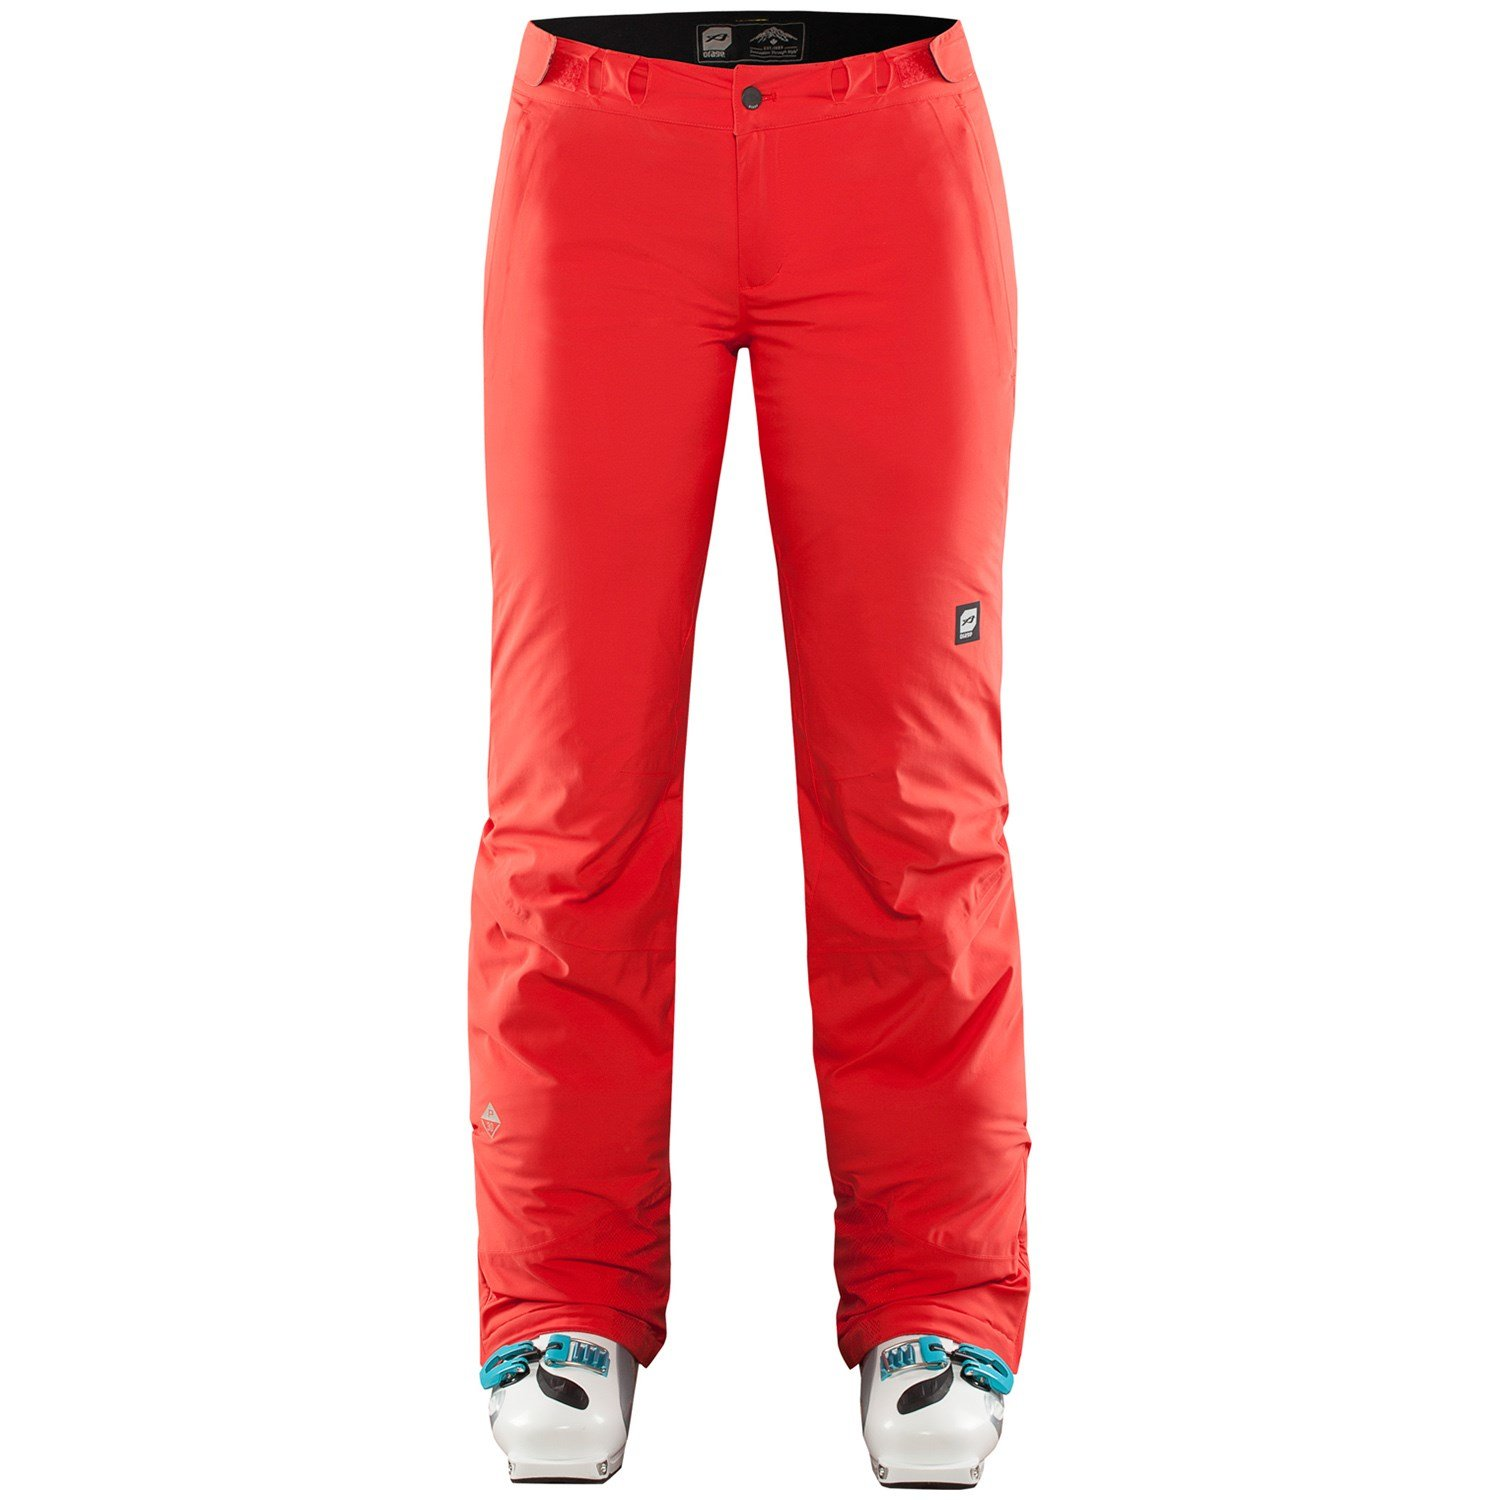 Colorful Pants For Women